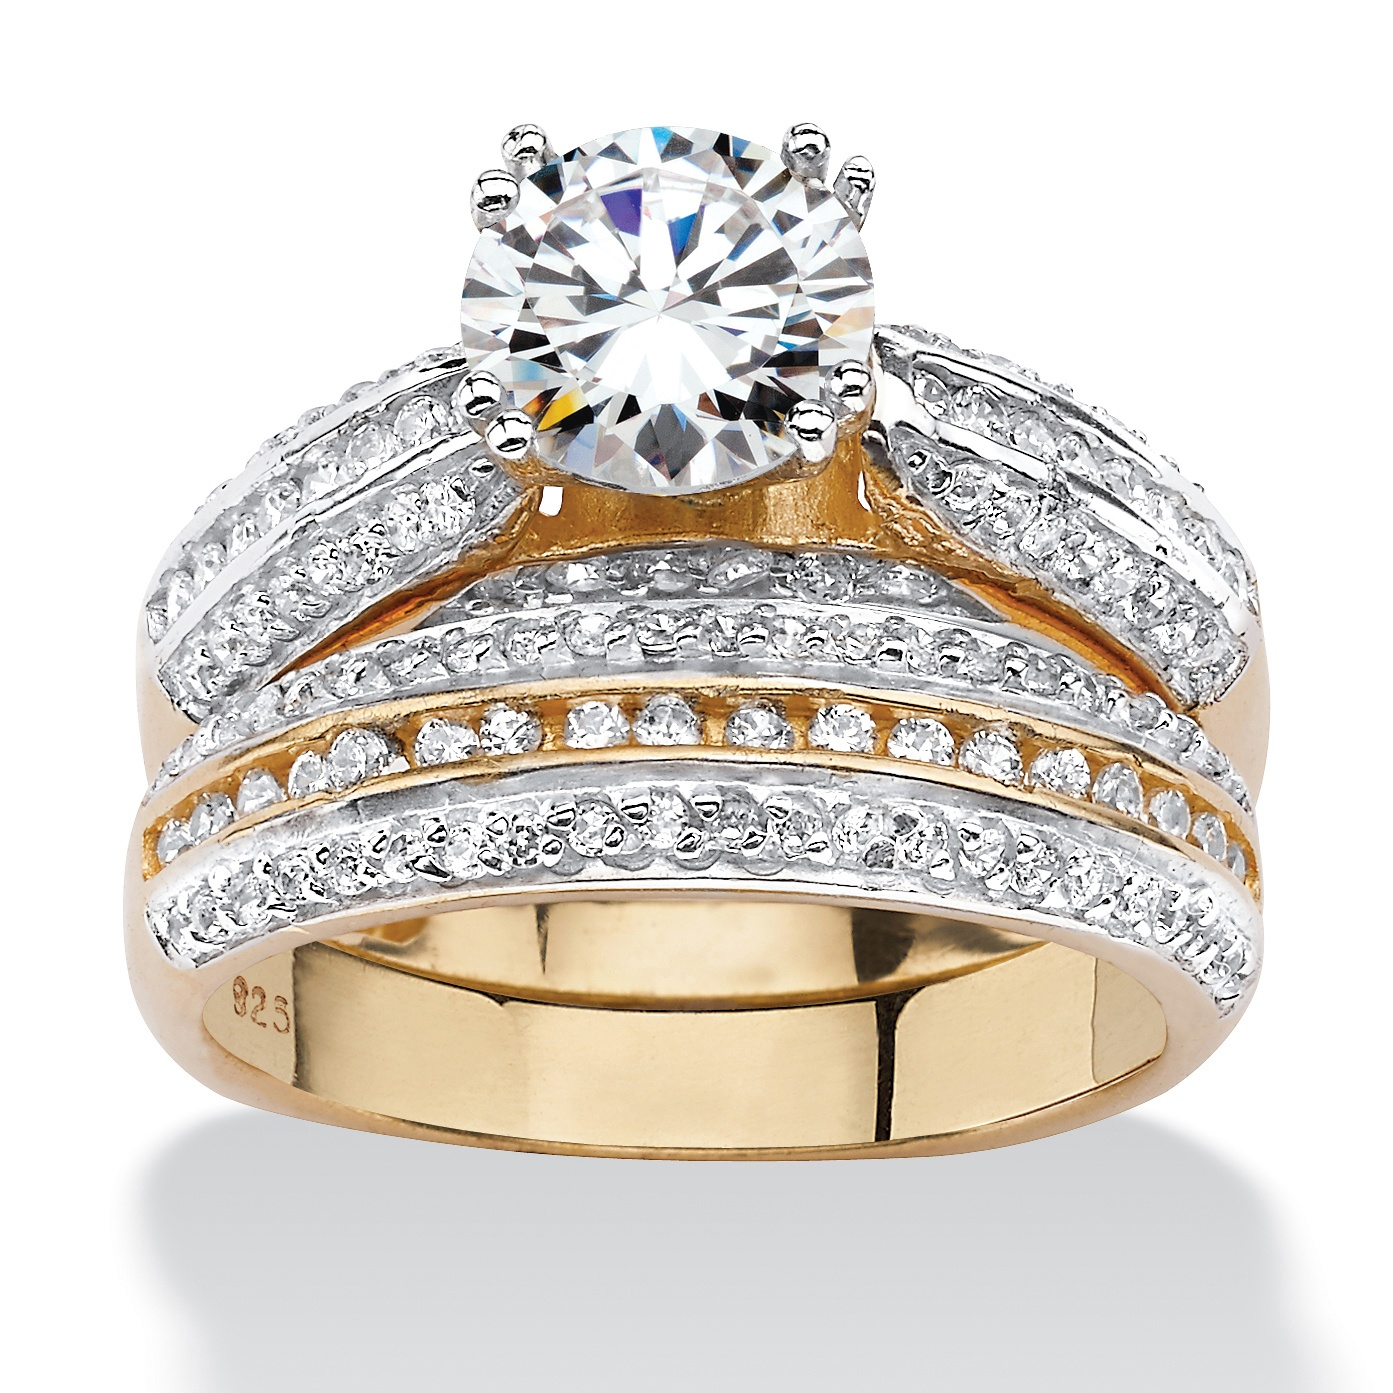 2.55 TCW Cubic Zirconia Two-Piece Bridal Set in18k Gold over Sterling Silver